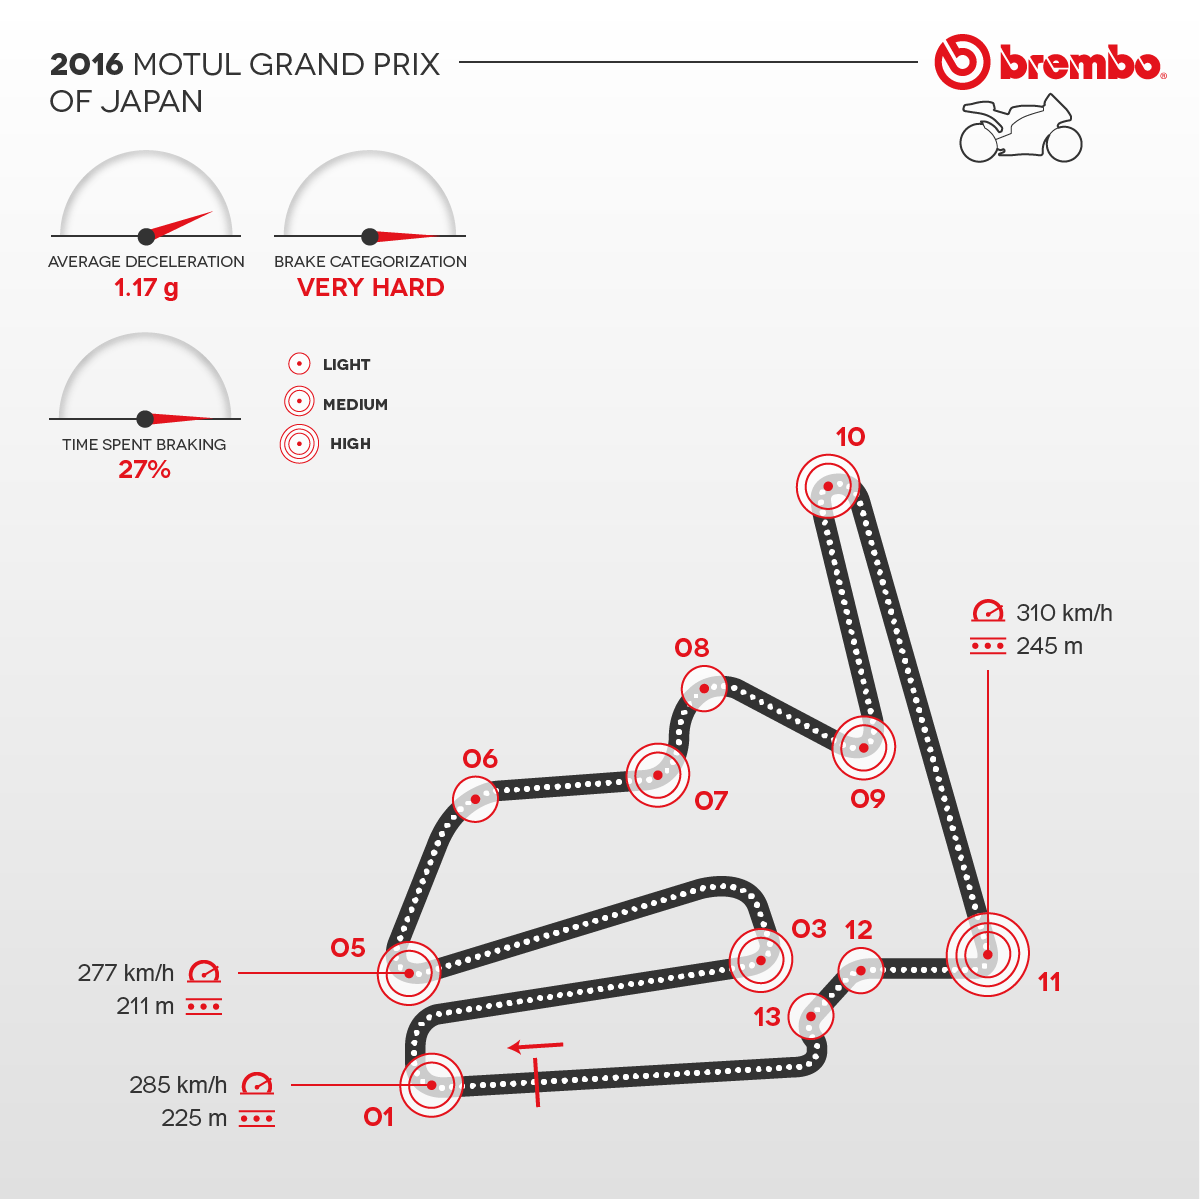 hight resolution of detailed representation of the 2016 japanese circuit with curves detail brembo